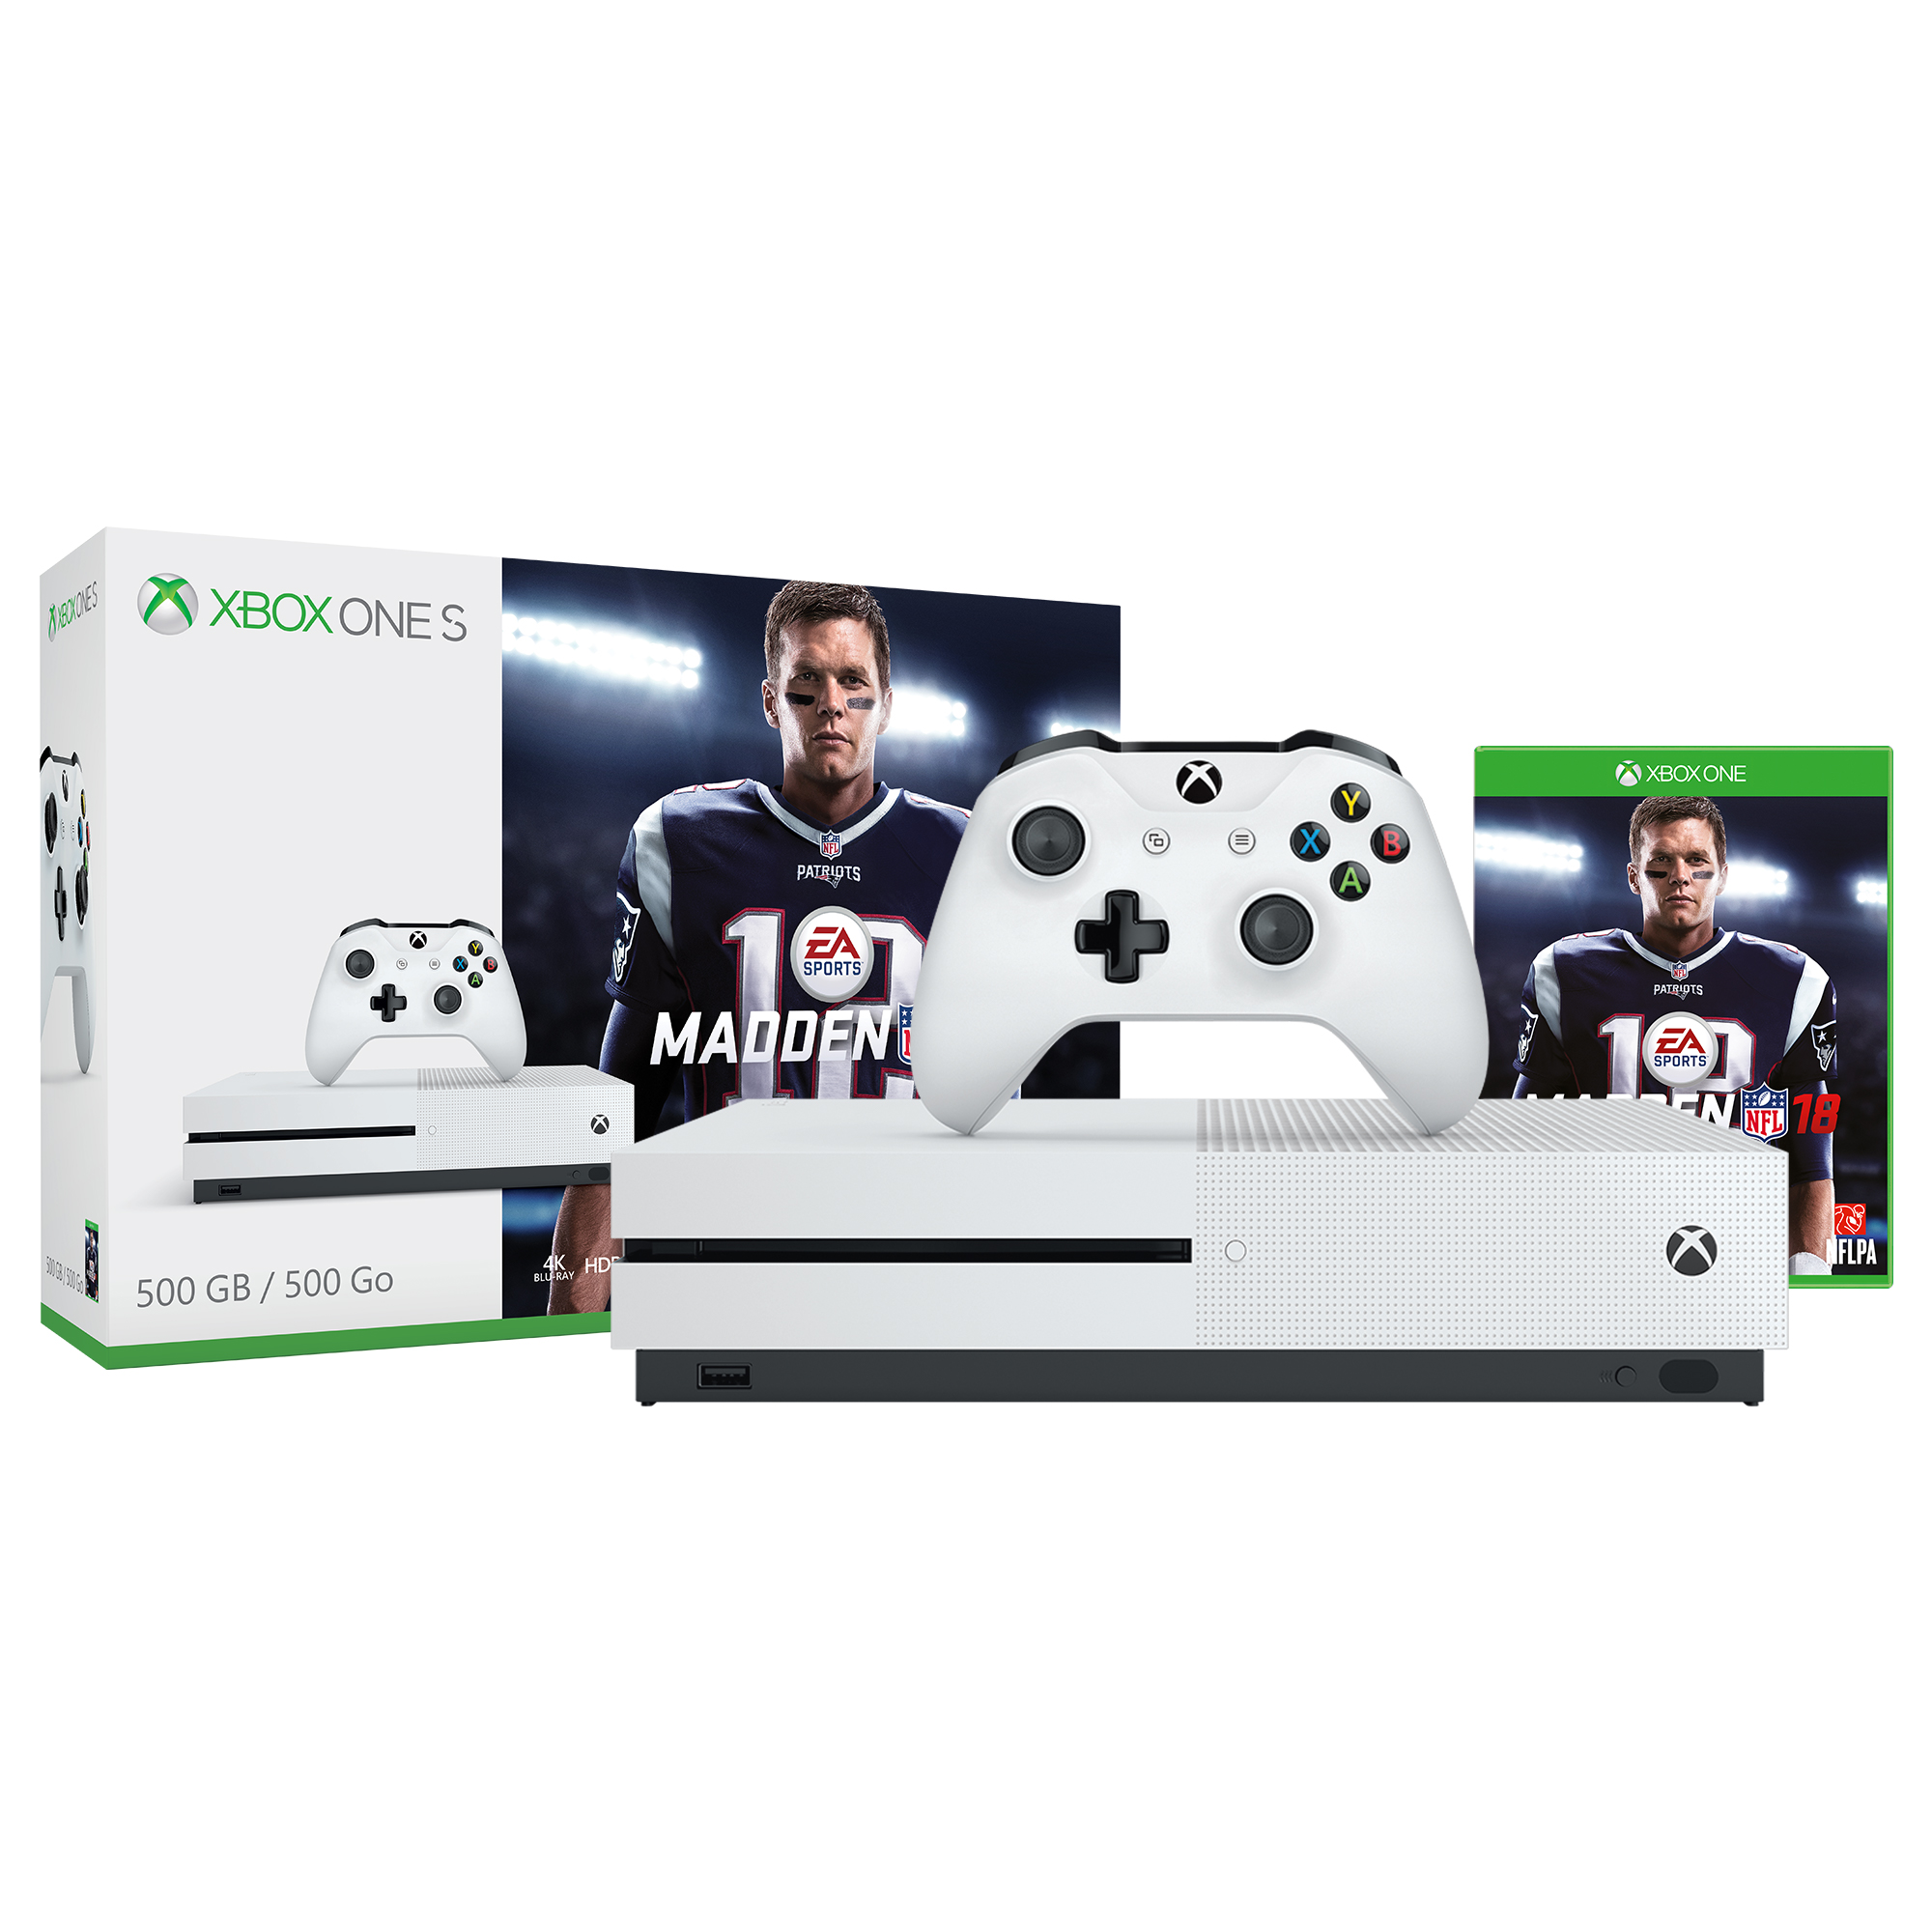 Microsoft Xbox One S (500GB) Madden NFL 18 Bundle, White, ZQ9-00317